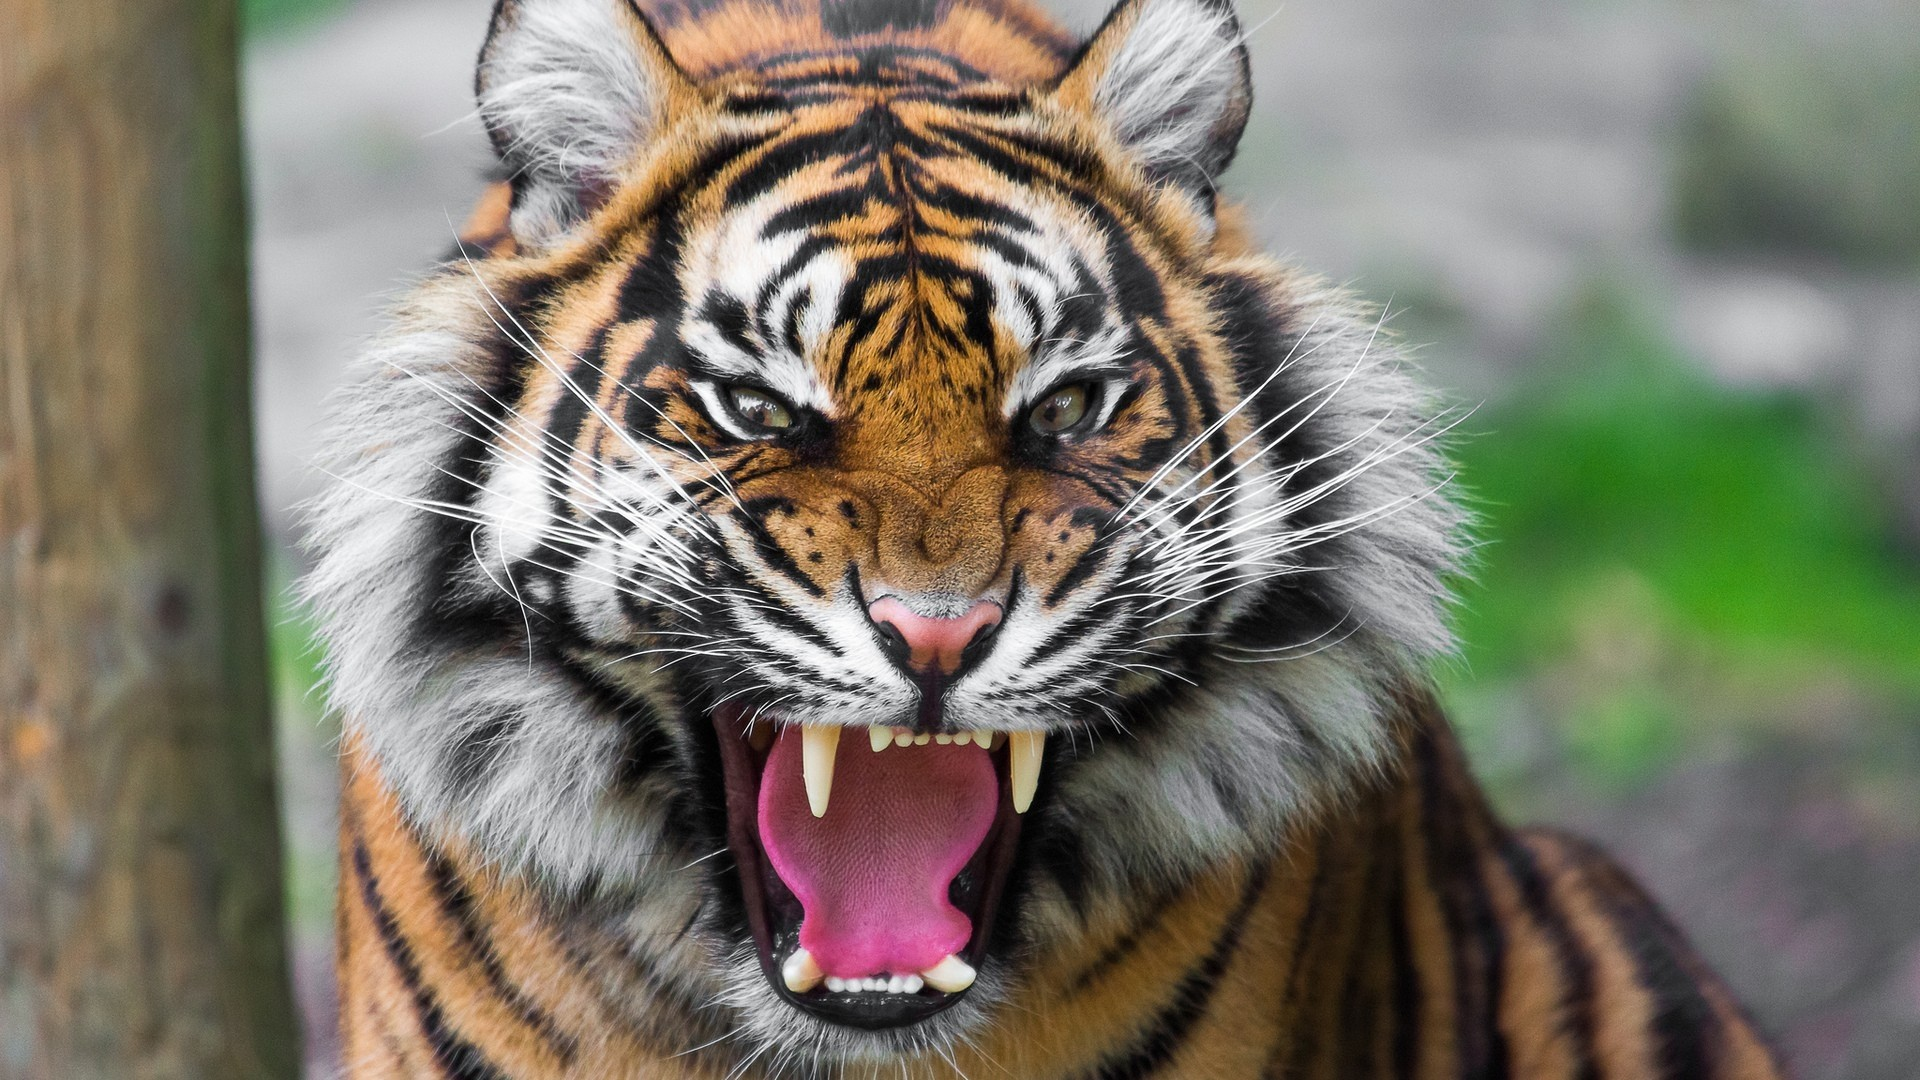 tiger hd wallpaper (81+ images)